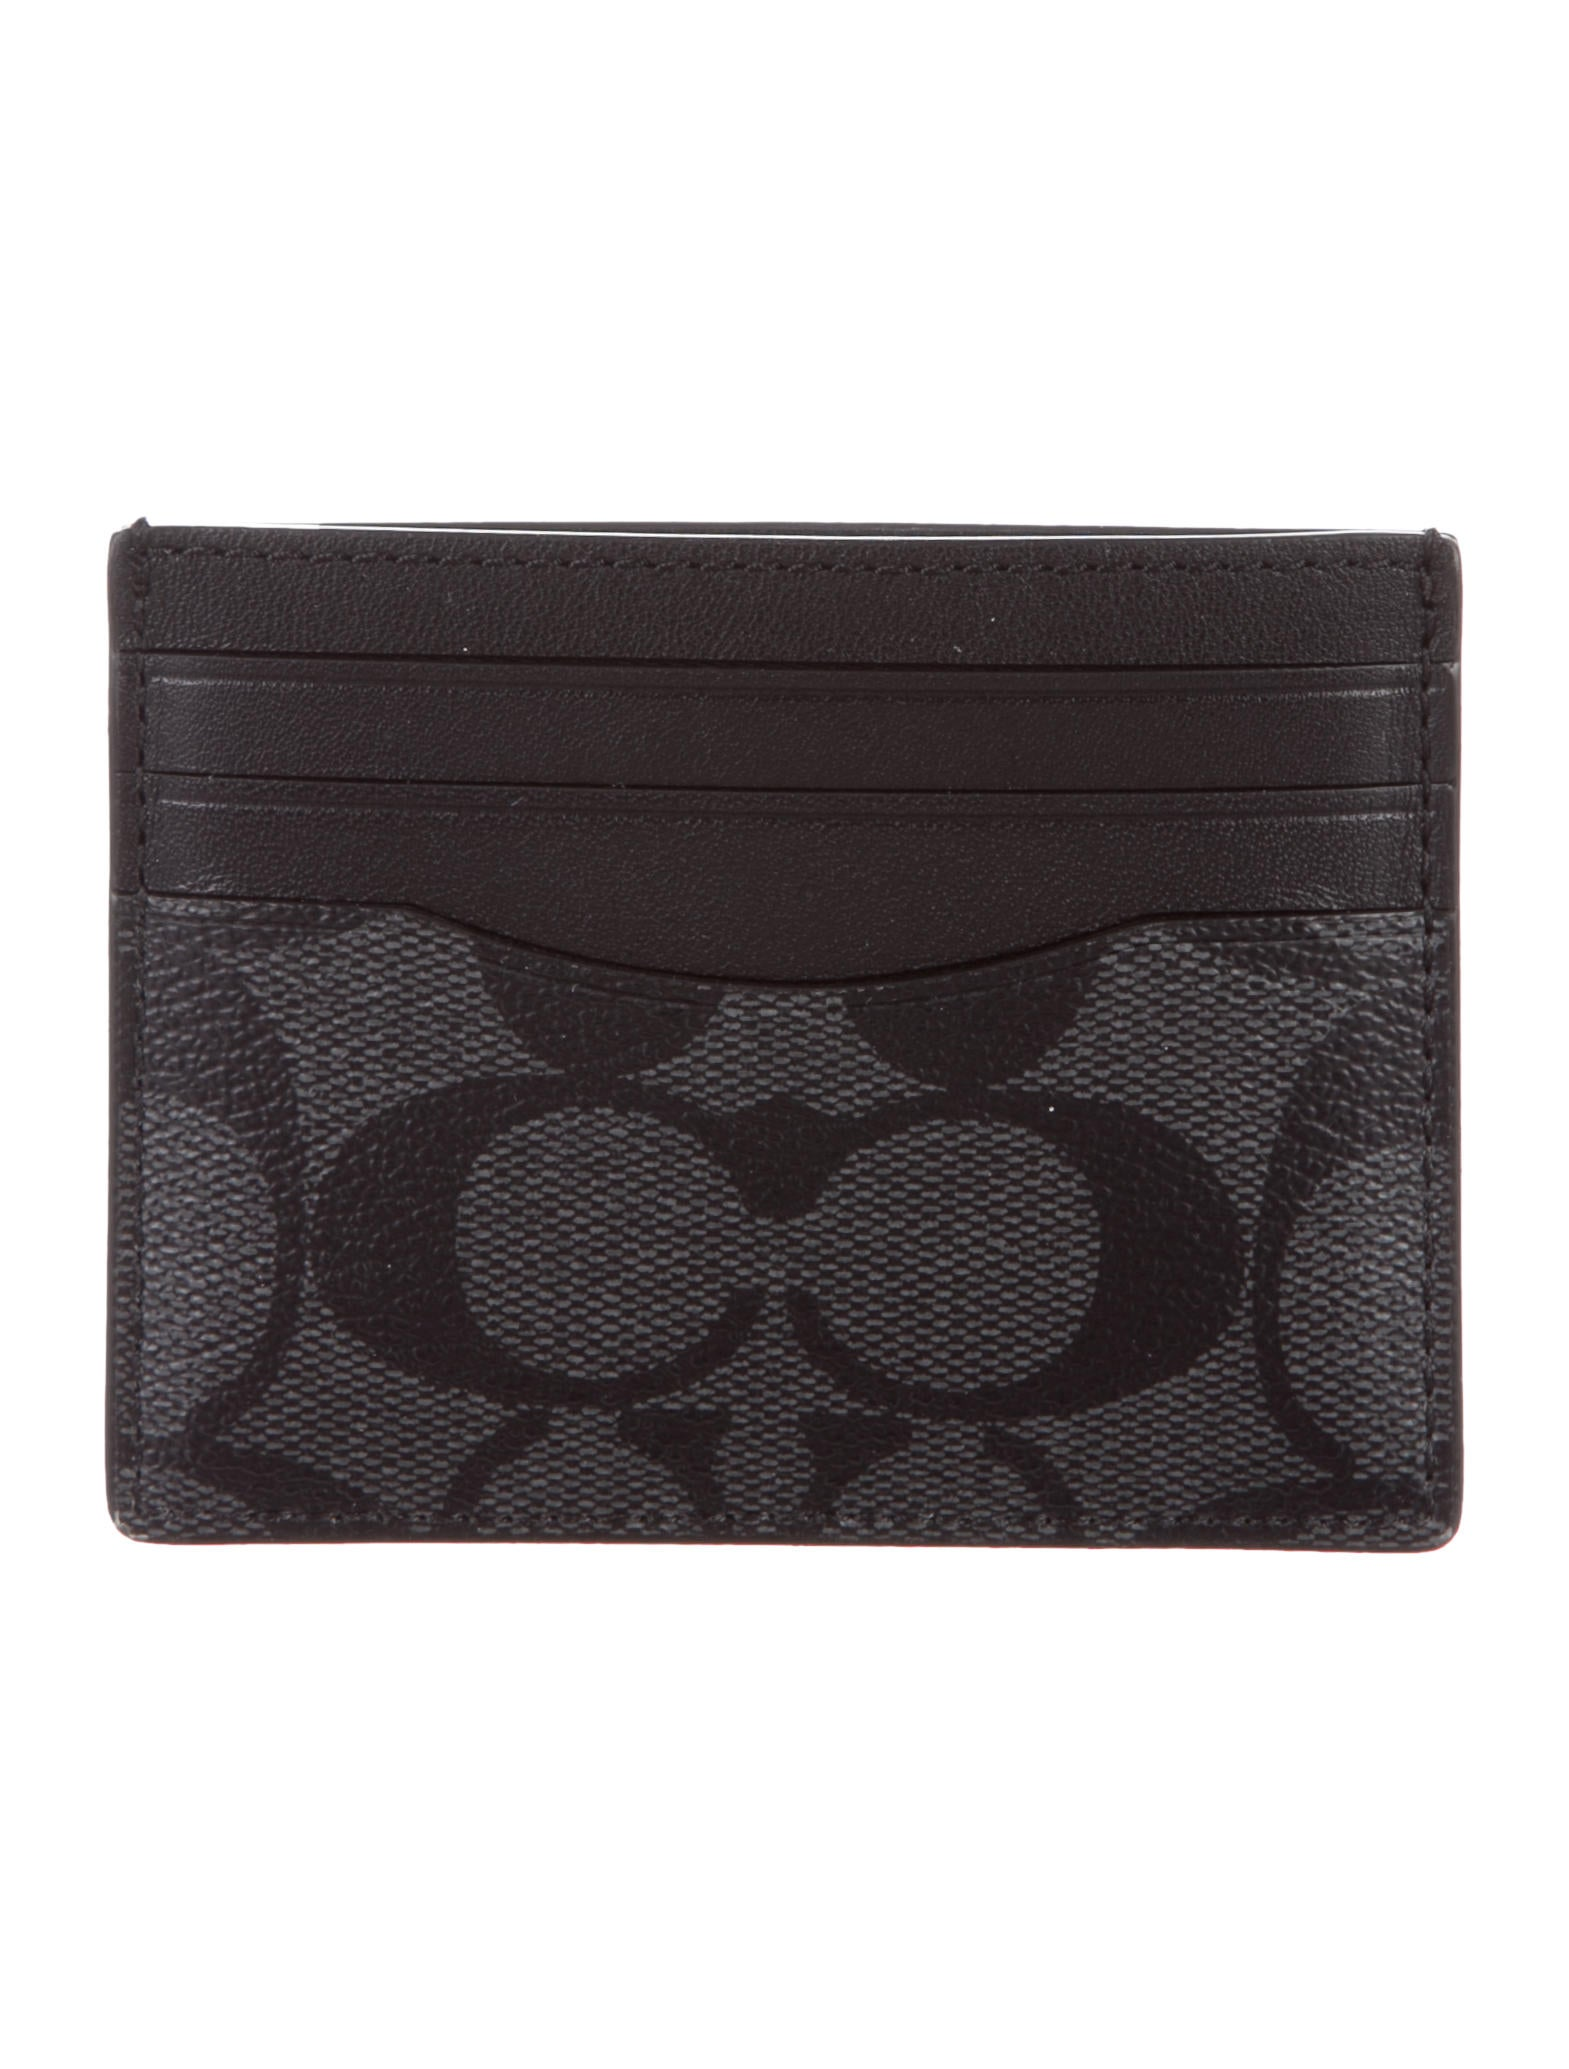 Coach Monogram-Trimmed Card Holder - Accessories - CCH24201 | The ...